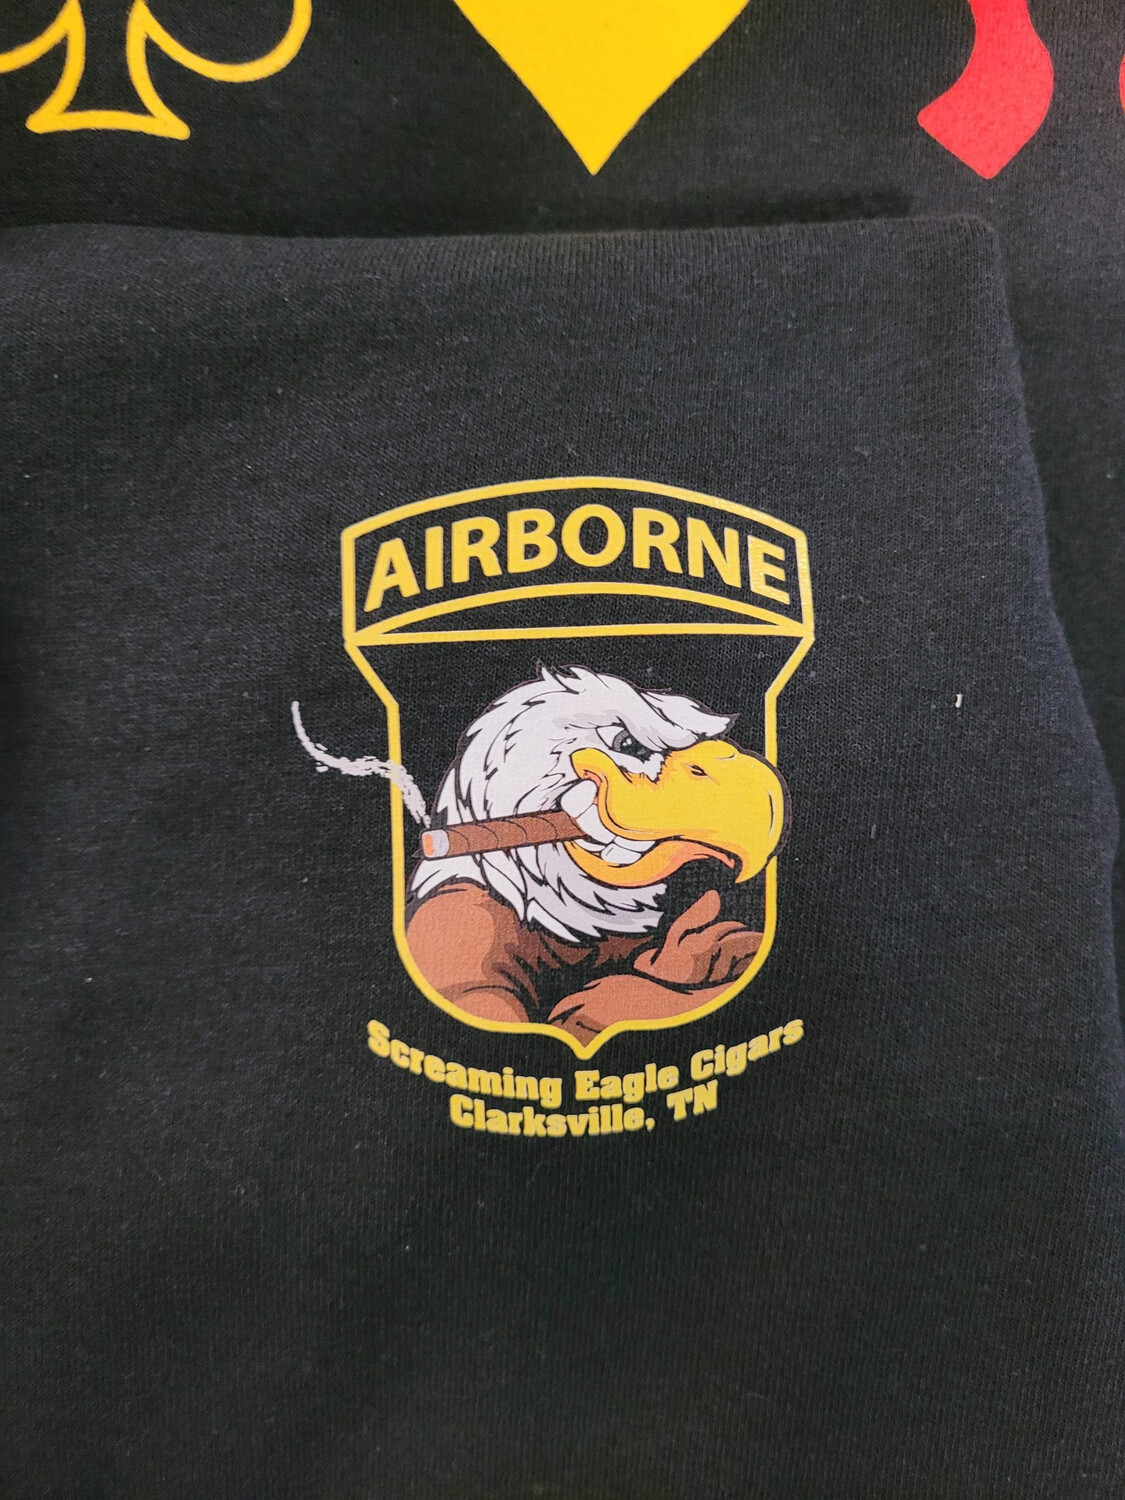 Color Screaming Eagle T-Shirt - Leave Size In Comments